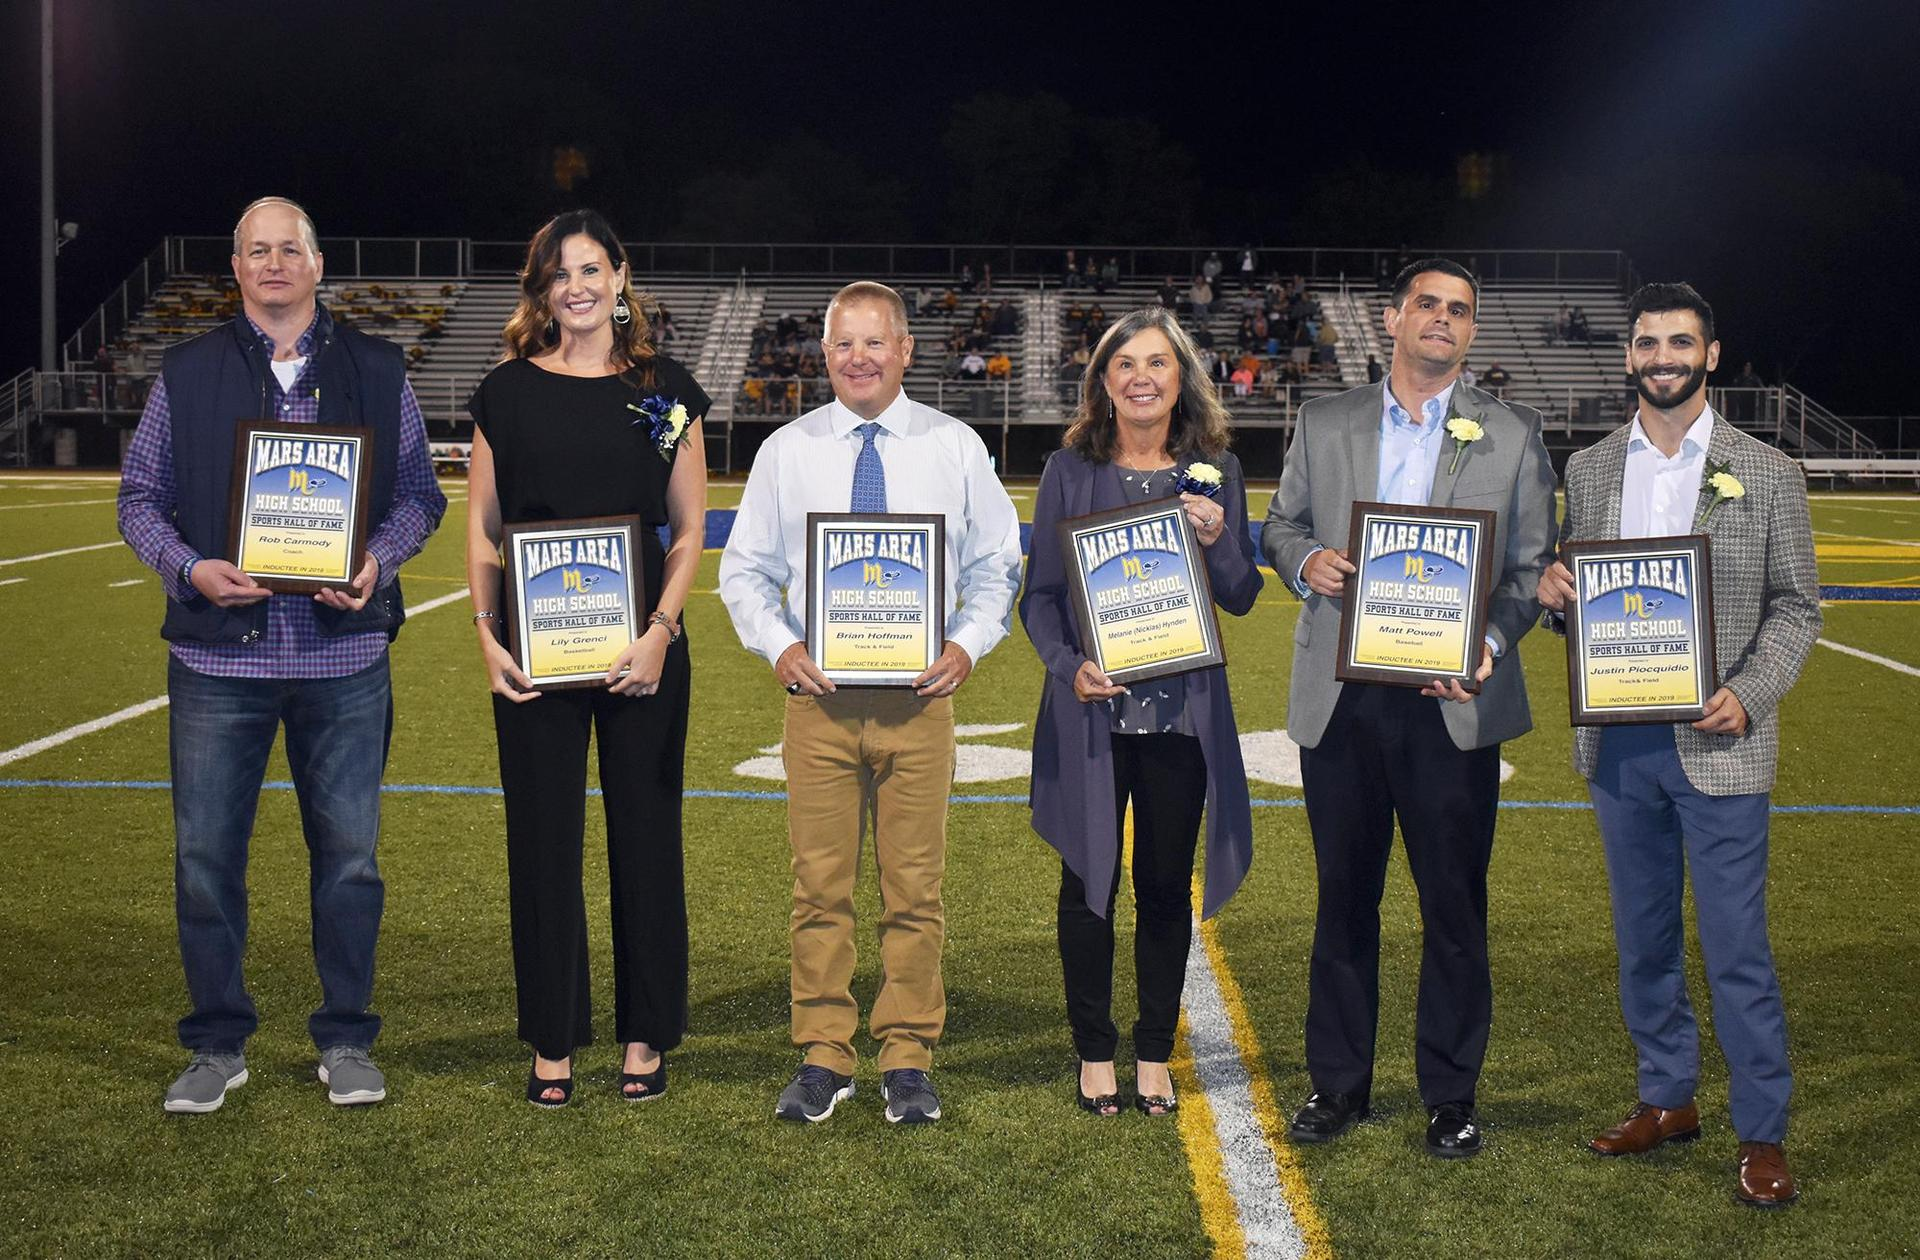 Members of the Mars Area High School Sports Hall of Fame Induction Class of 2019